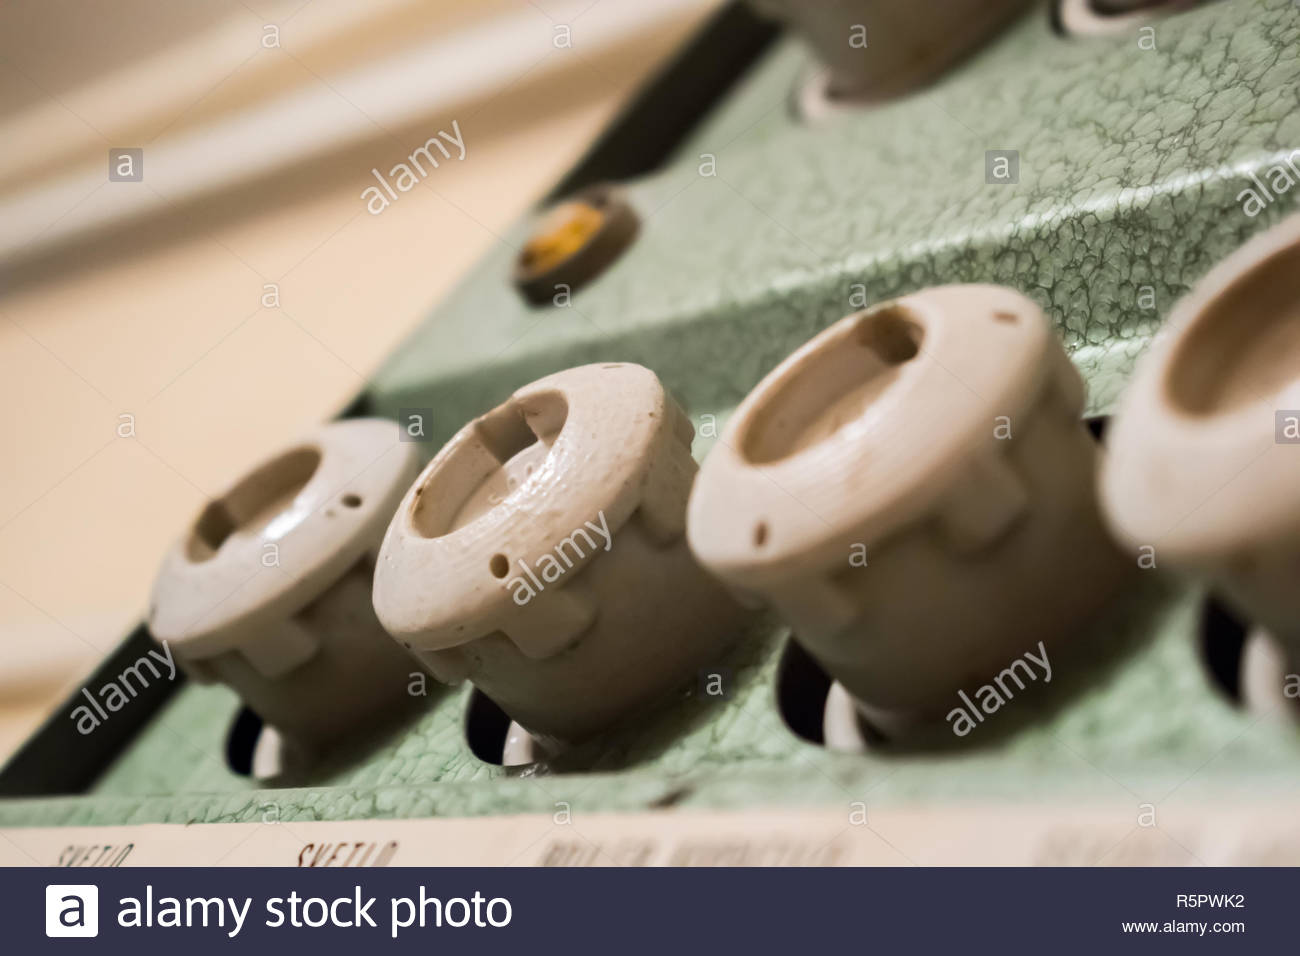 Old Fuses Fuse Box Stock Photos Images Older Electrical Boxes Panel With Image